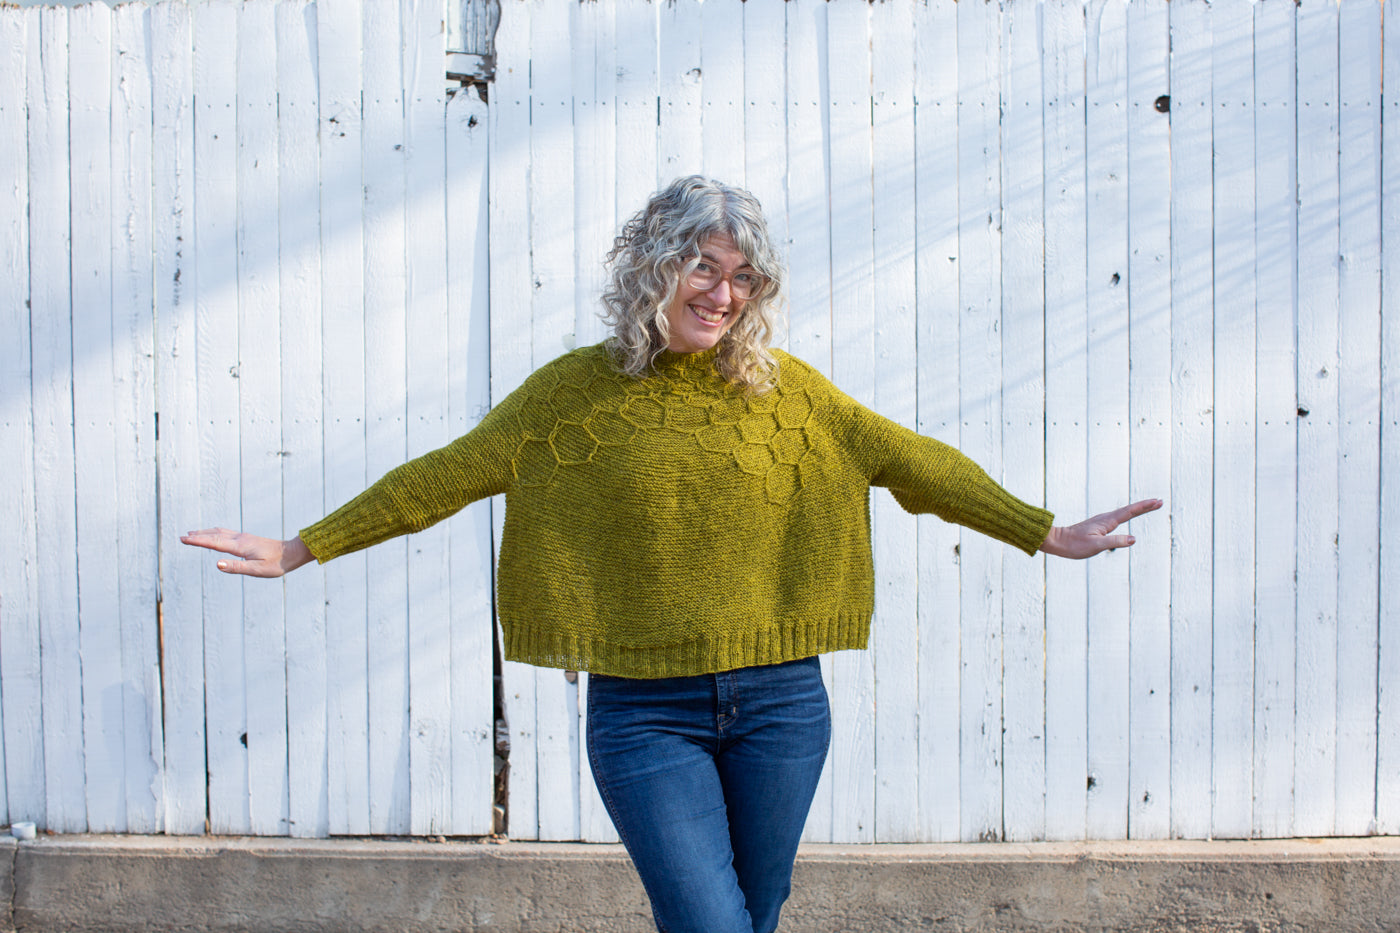 Jaime smiling, facing straight at the camera,  standing with arms out showing a yellow-green knitted sweater and wearing dark jeans.  The sweater has a honeycomb design on top part of the sweater.  The background is a white fence.